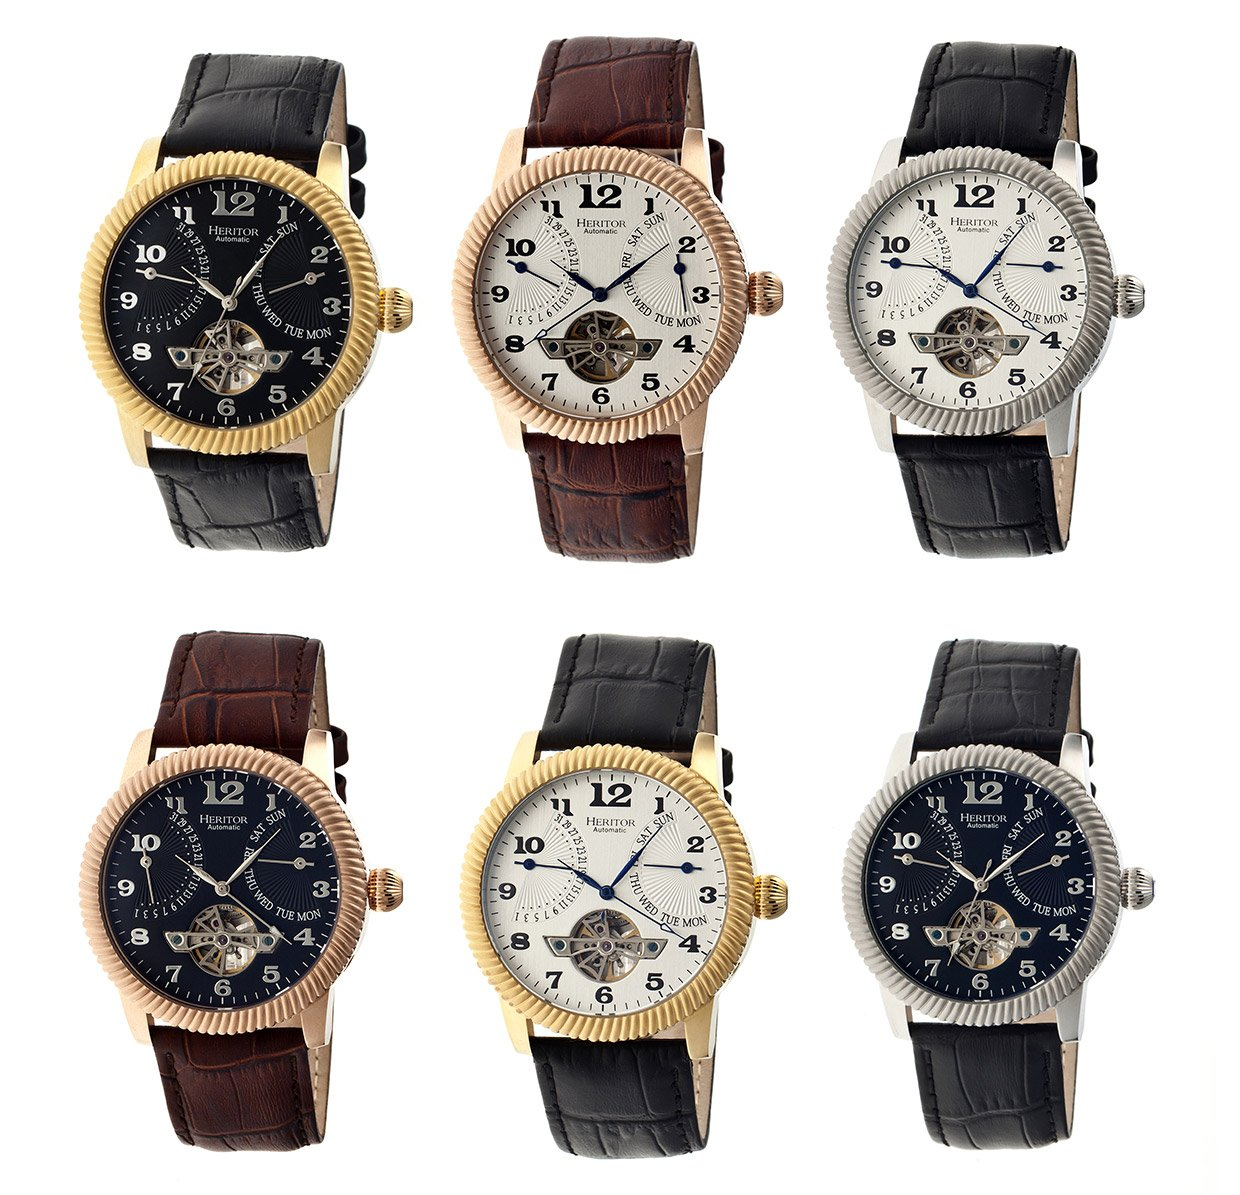 Heritor Piccard Automatic Watches